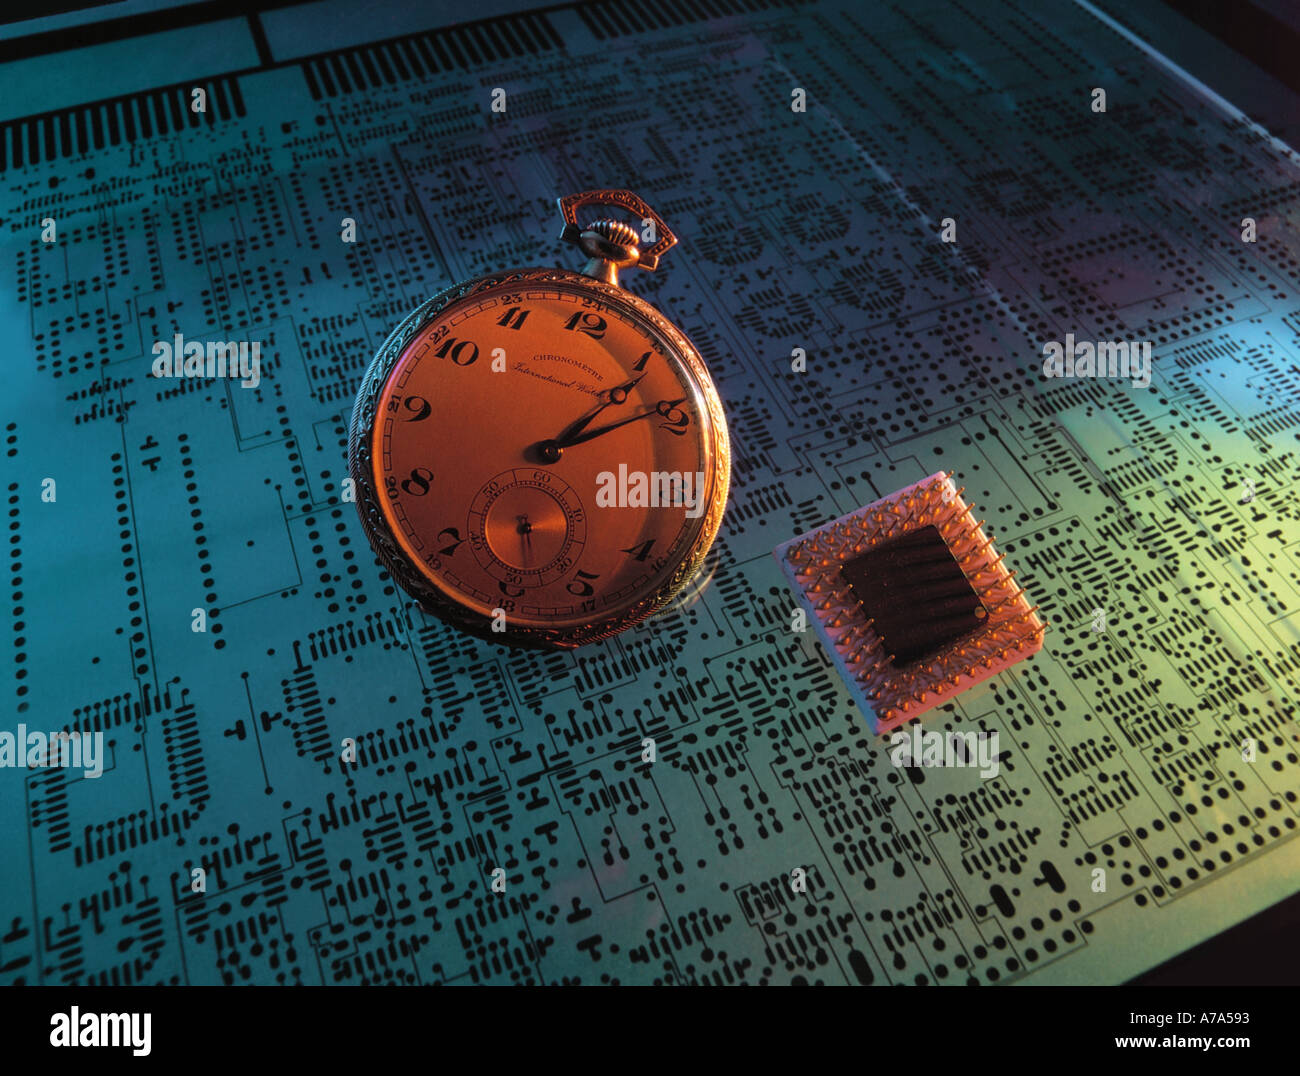 historic pocket watch micro processor layout of a circuit board motherboard - Stock Image